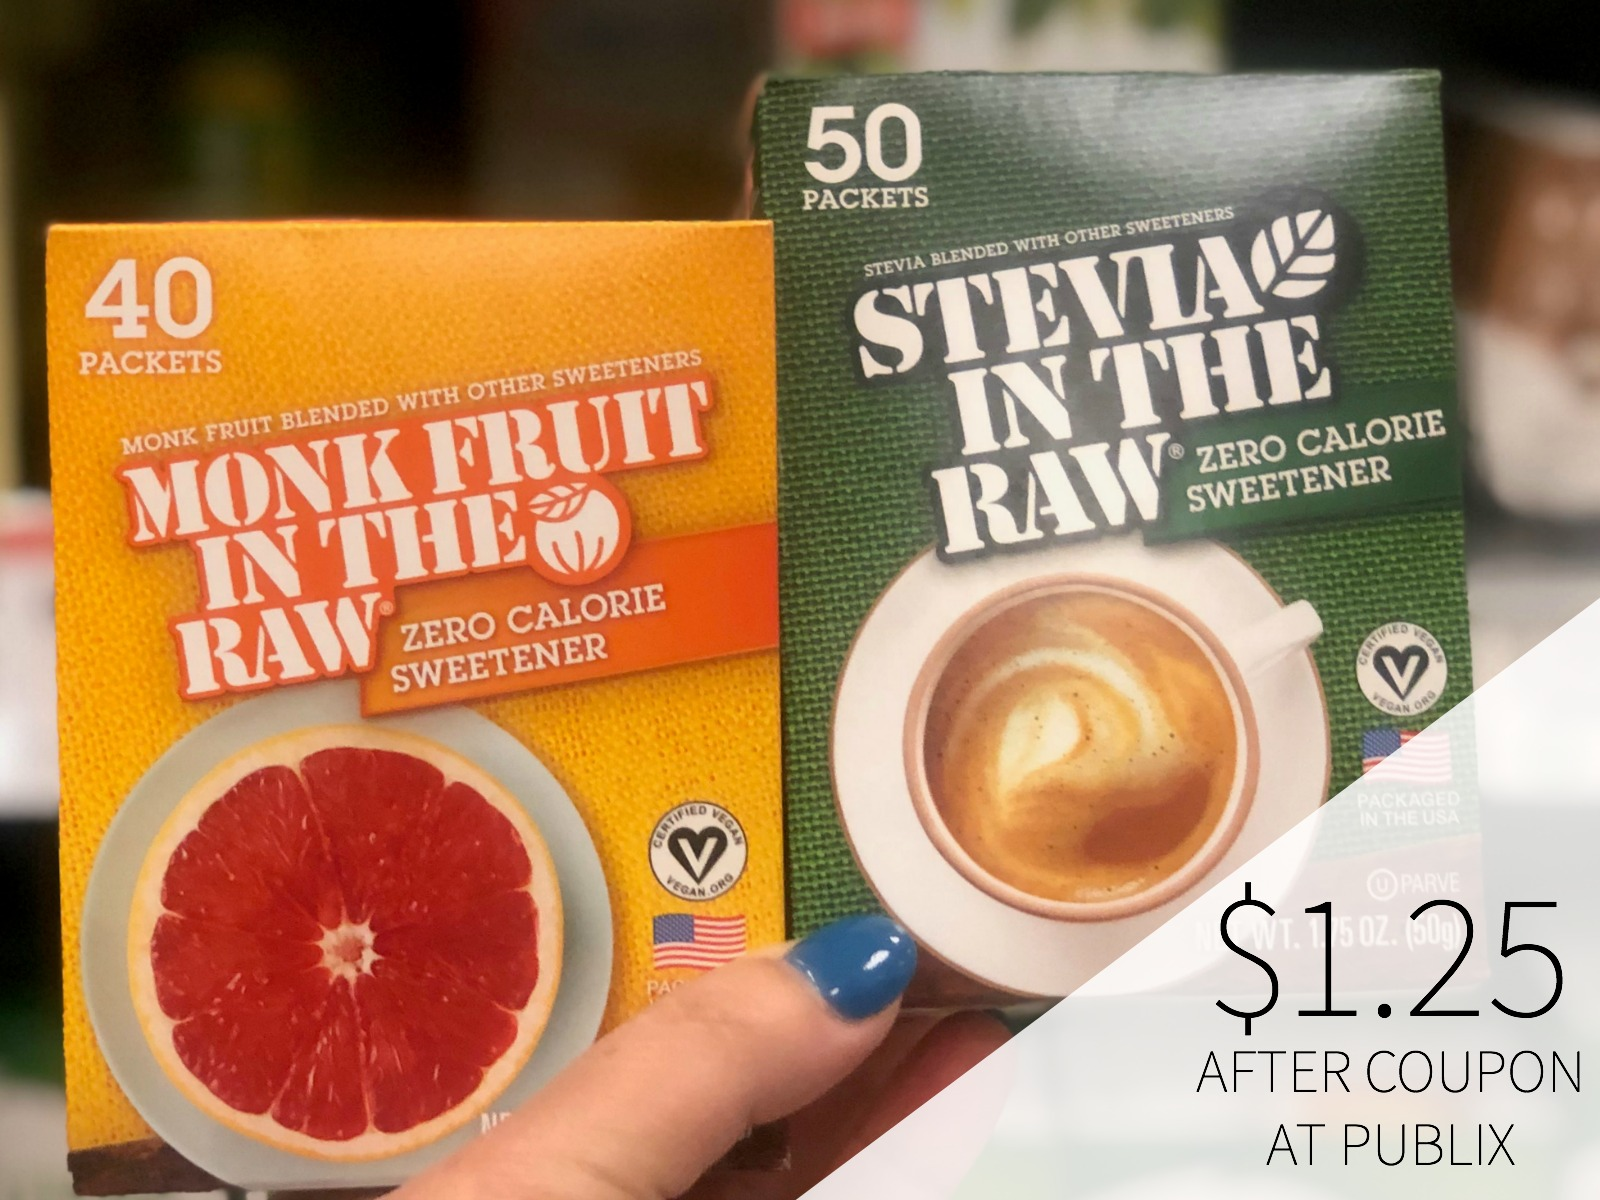 Stevia In The Raw Or Monk In The Raw Sweetener Only $1.25 At Publix on I Heart Publix